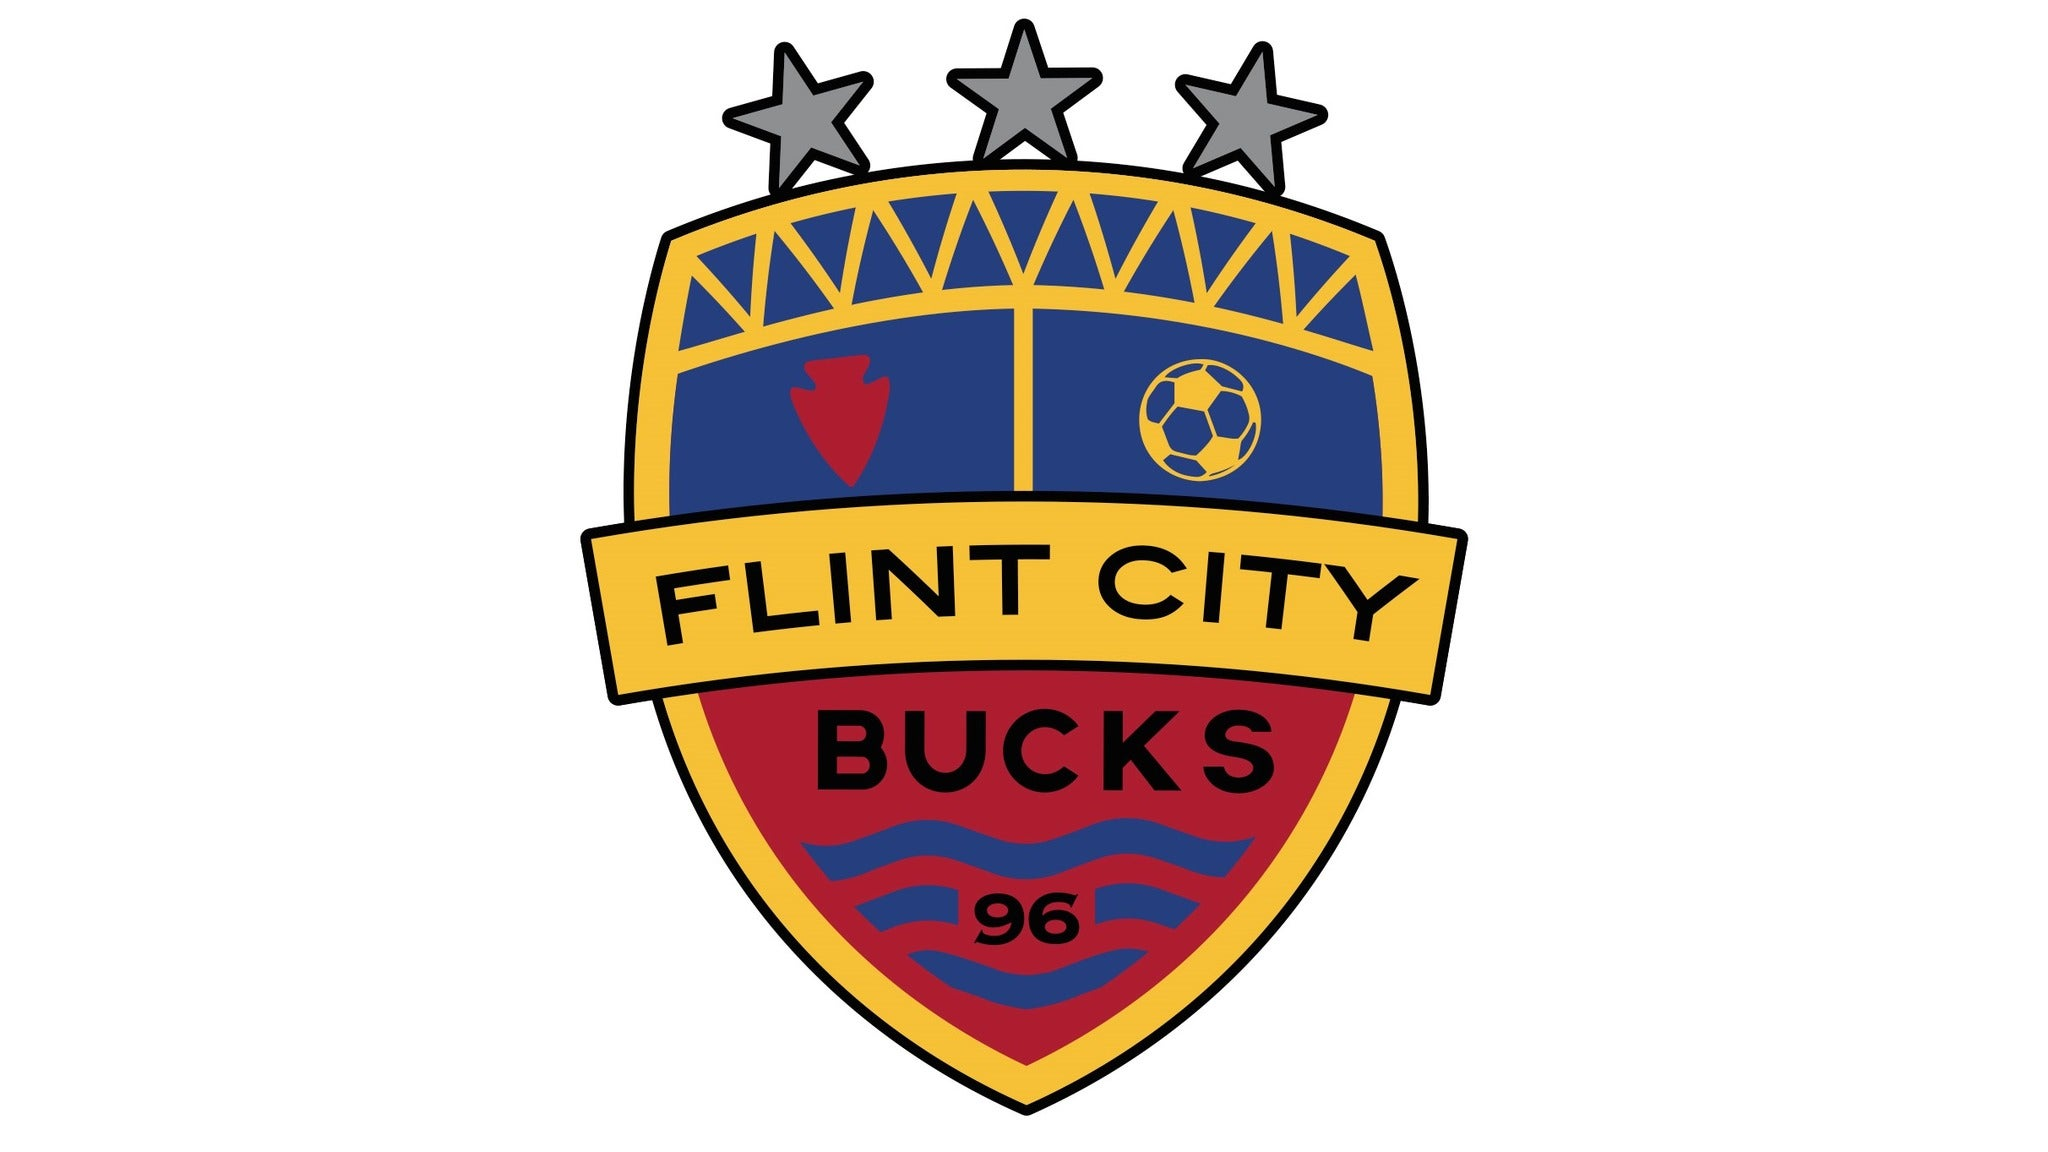 Flint City Bucks v Grand Rapids FC